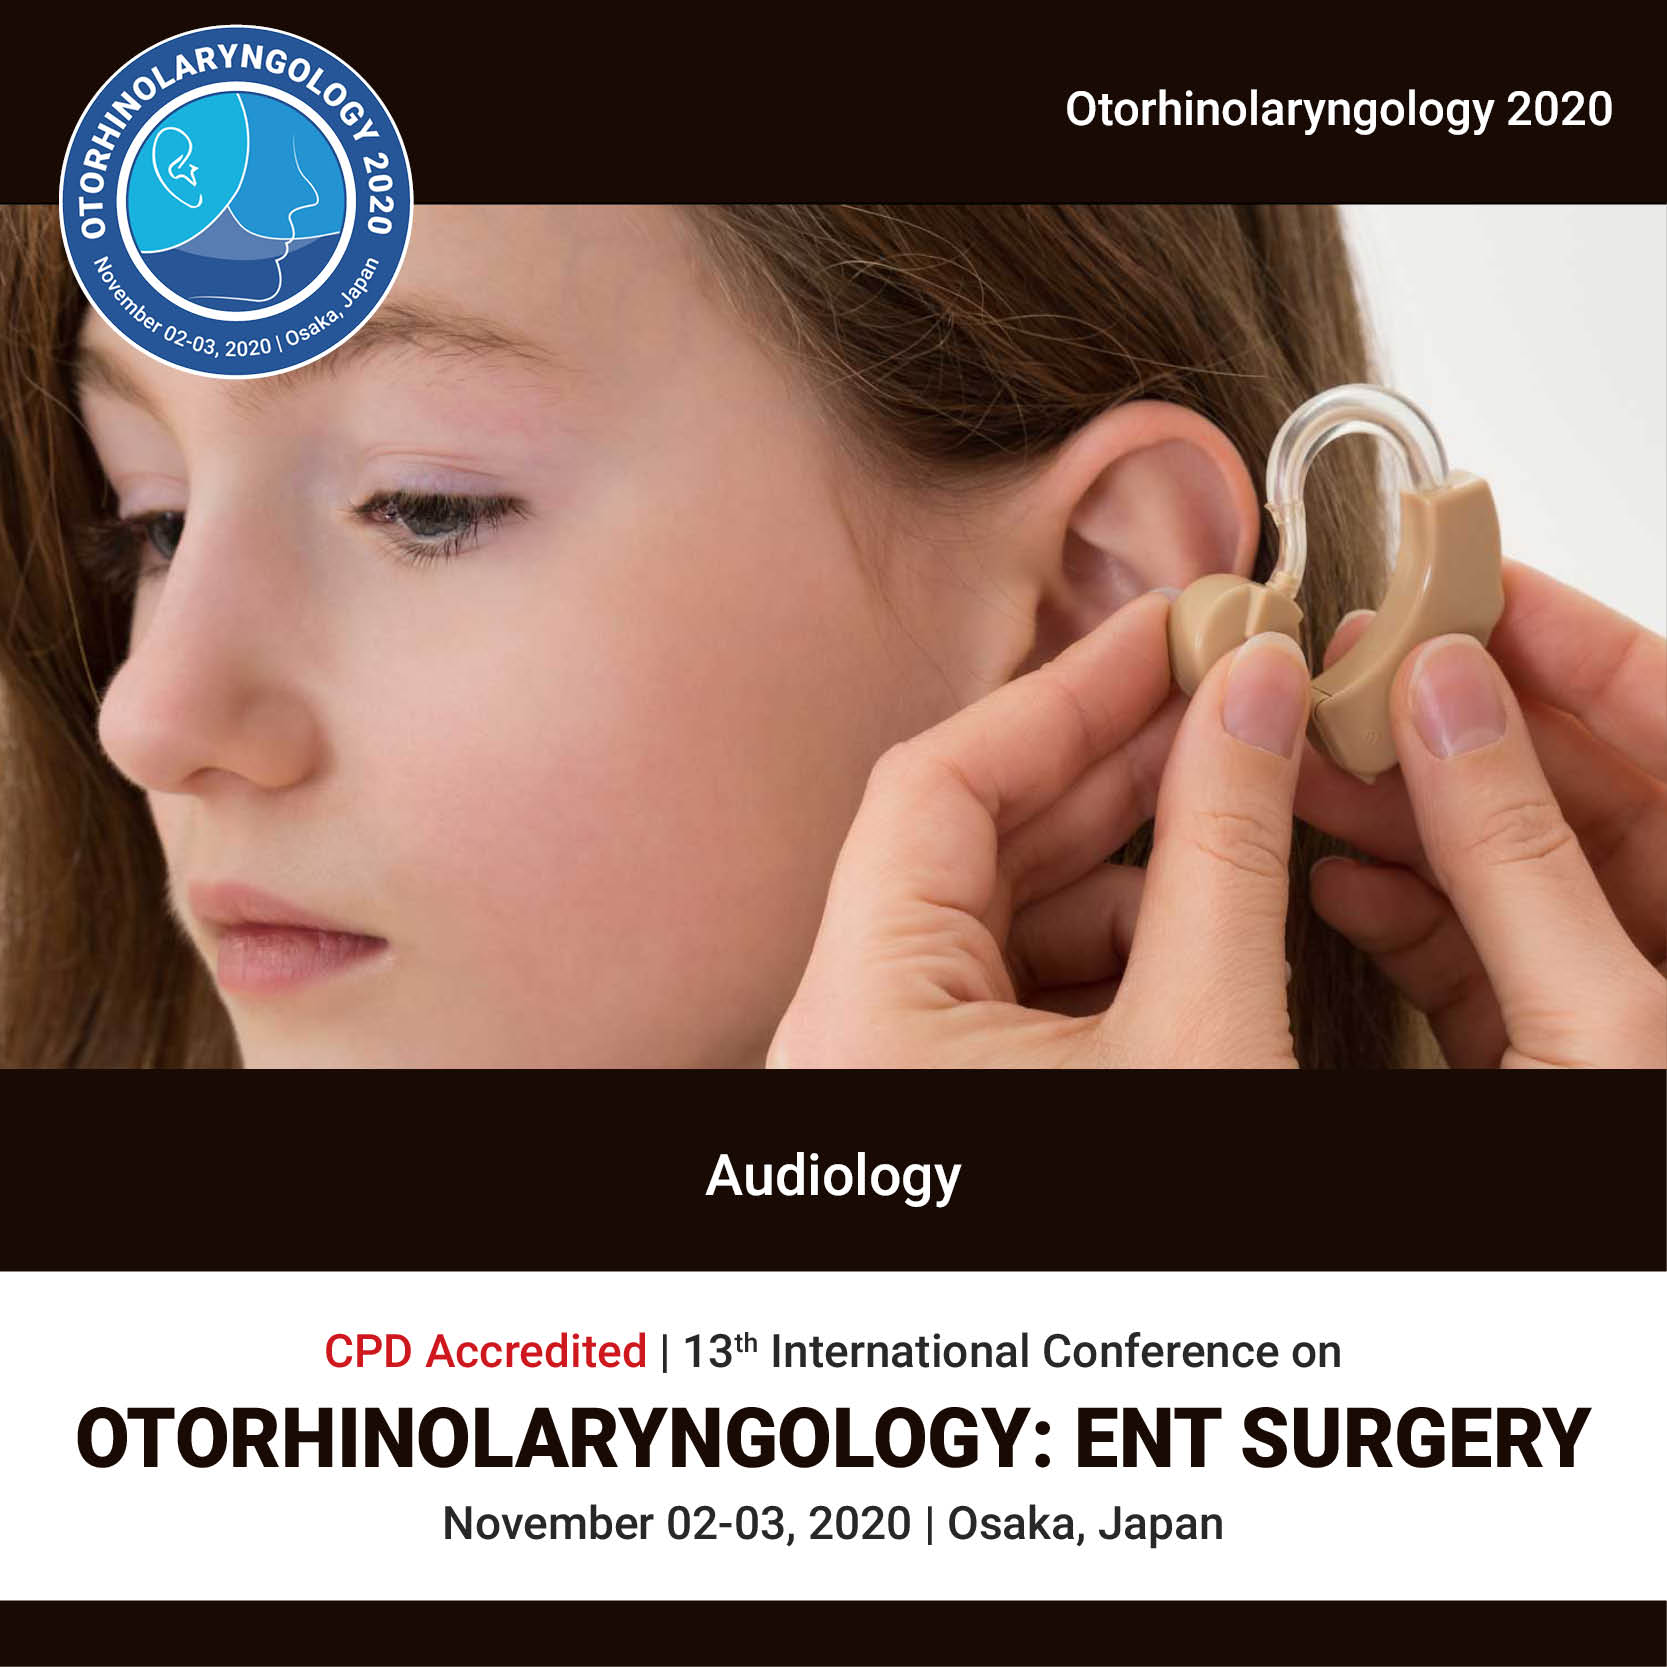 Audiology Photo